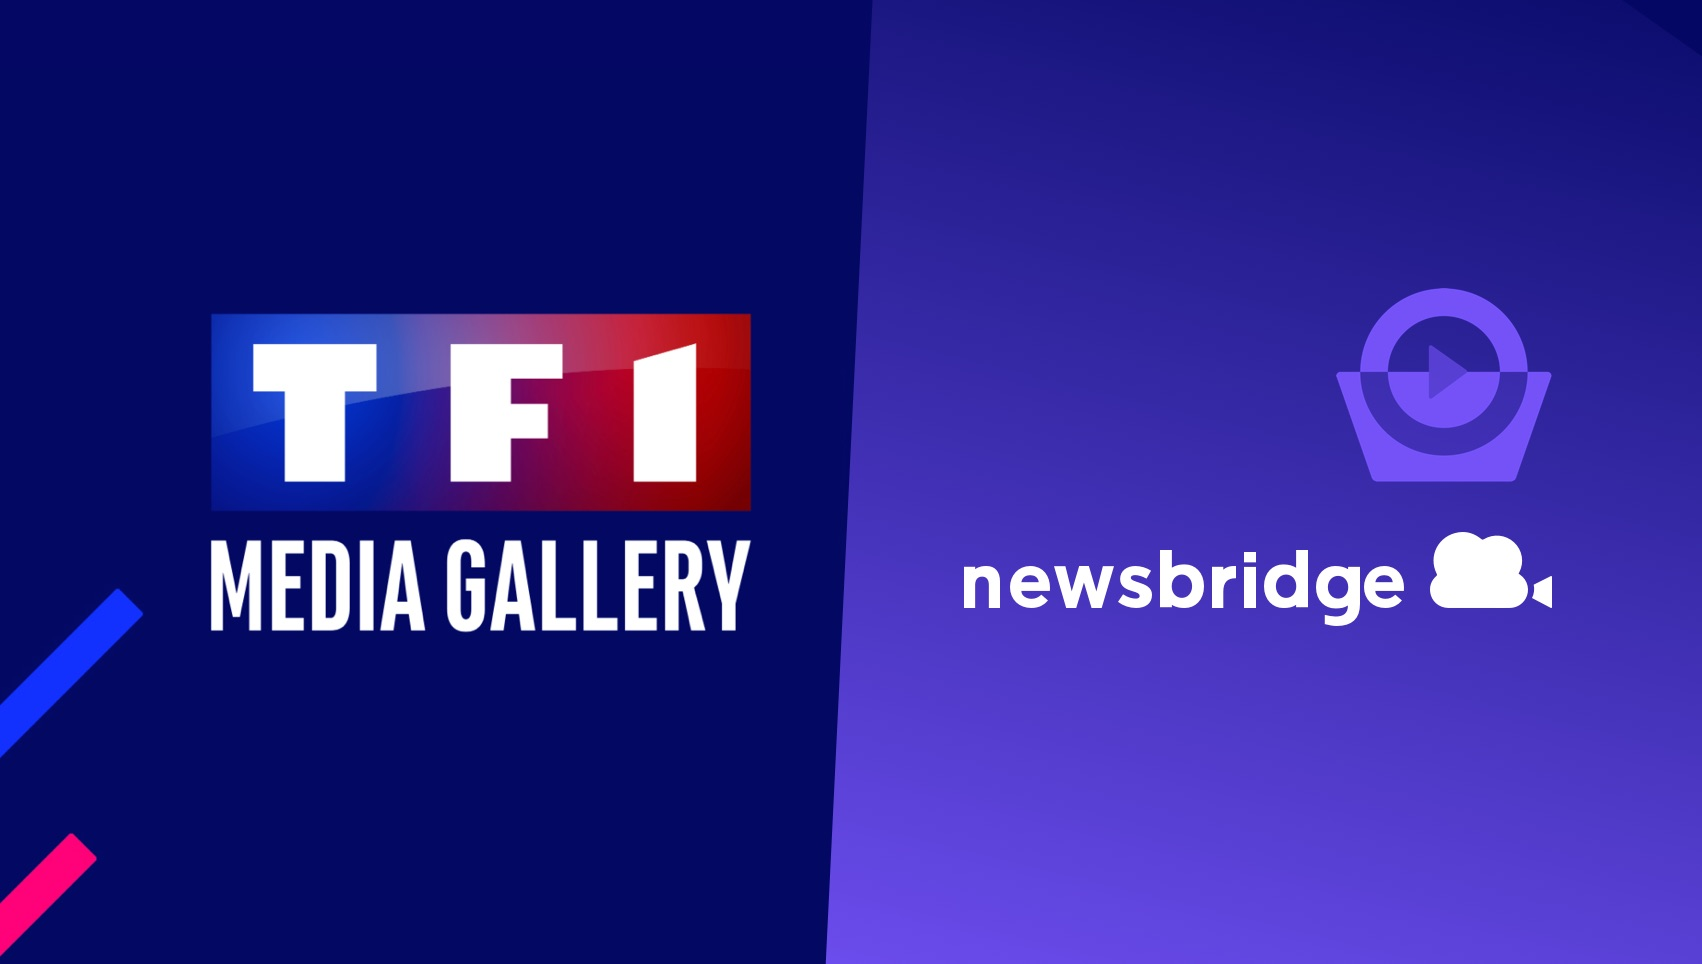 Le groupe TF1 s'associe à Newsbridge: TF1 MEDIA GALLERY